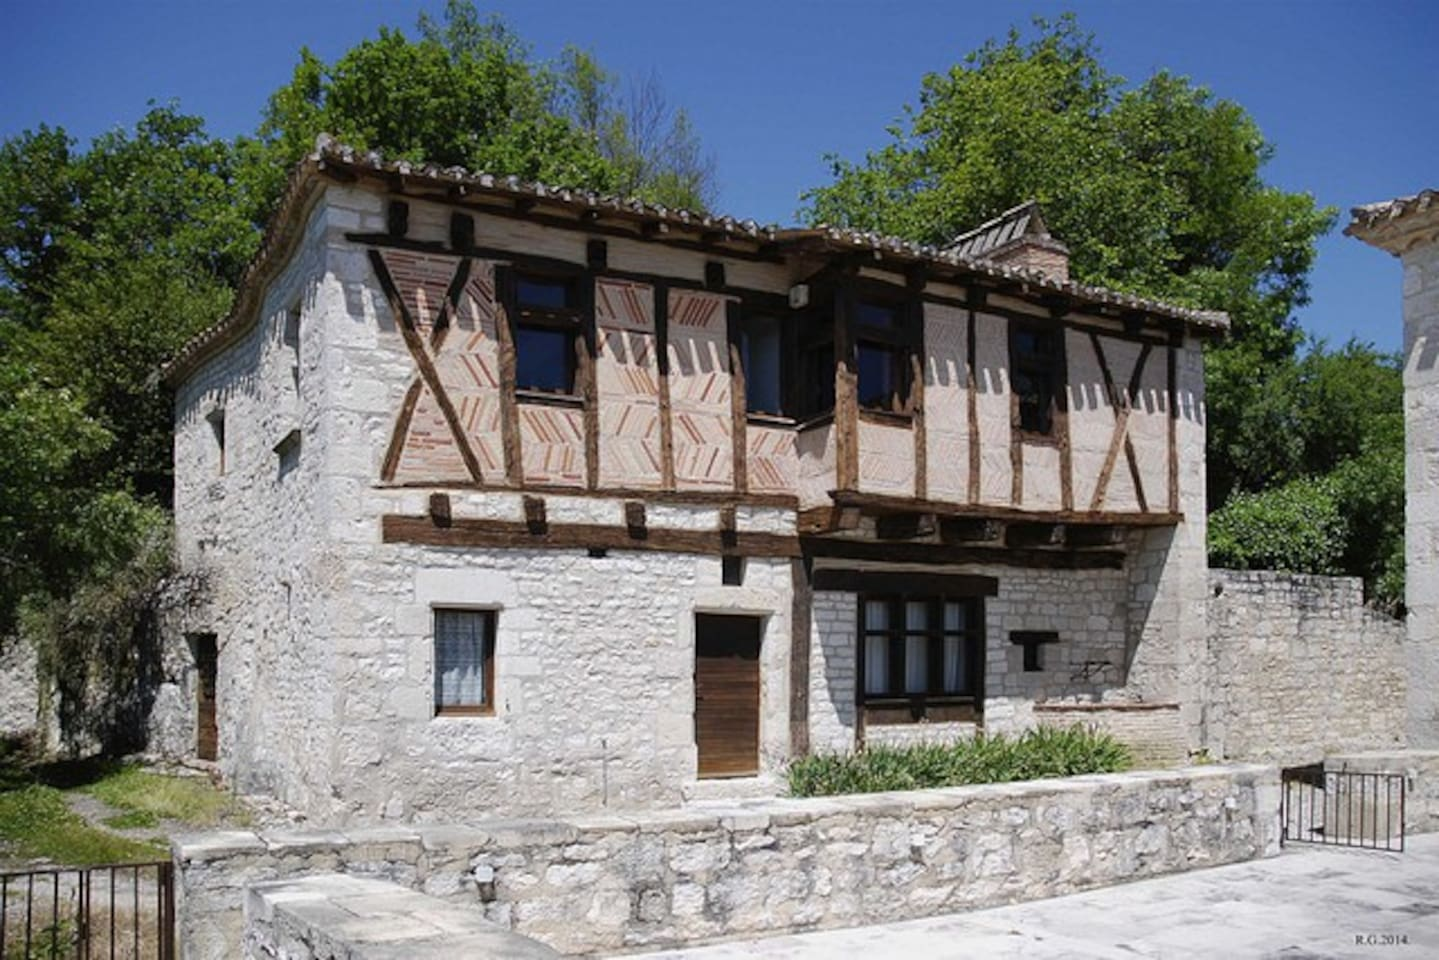 The house is renovated medieval style